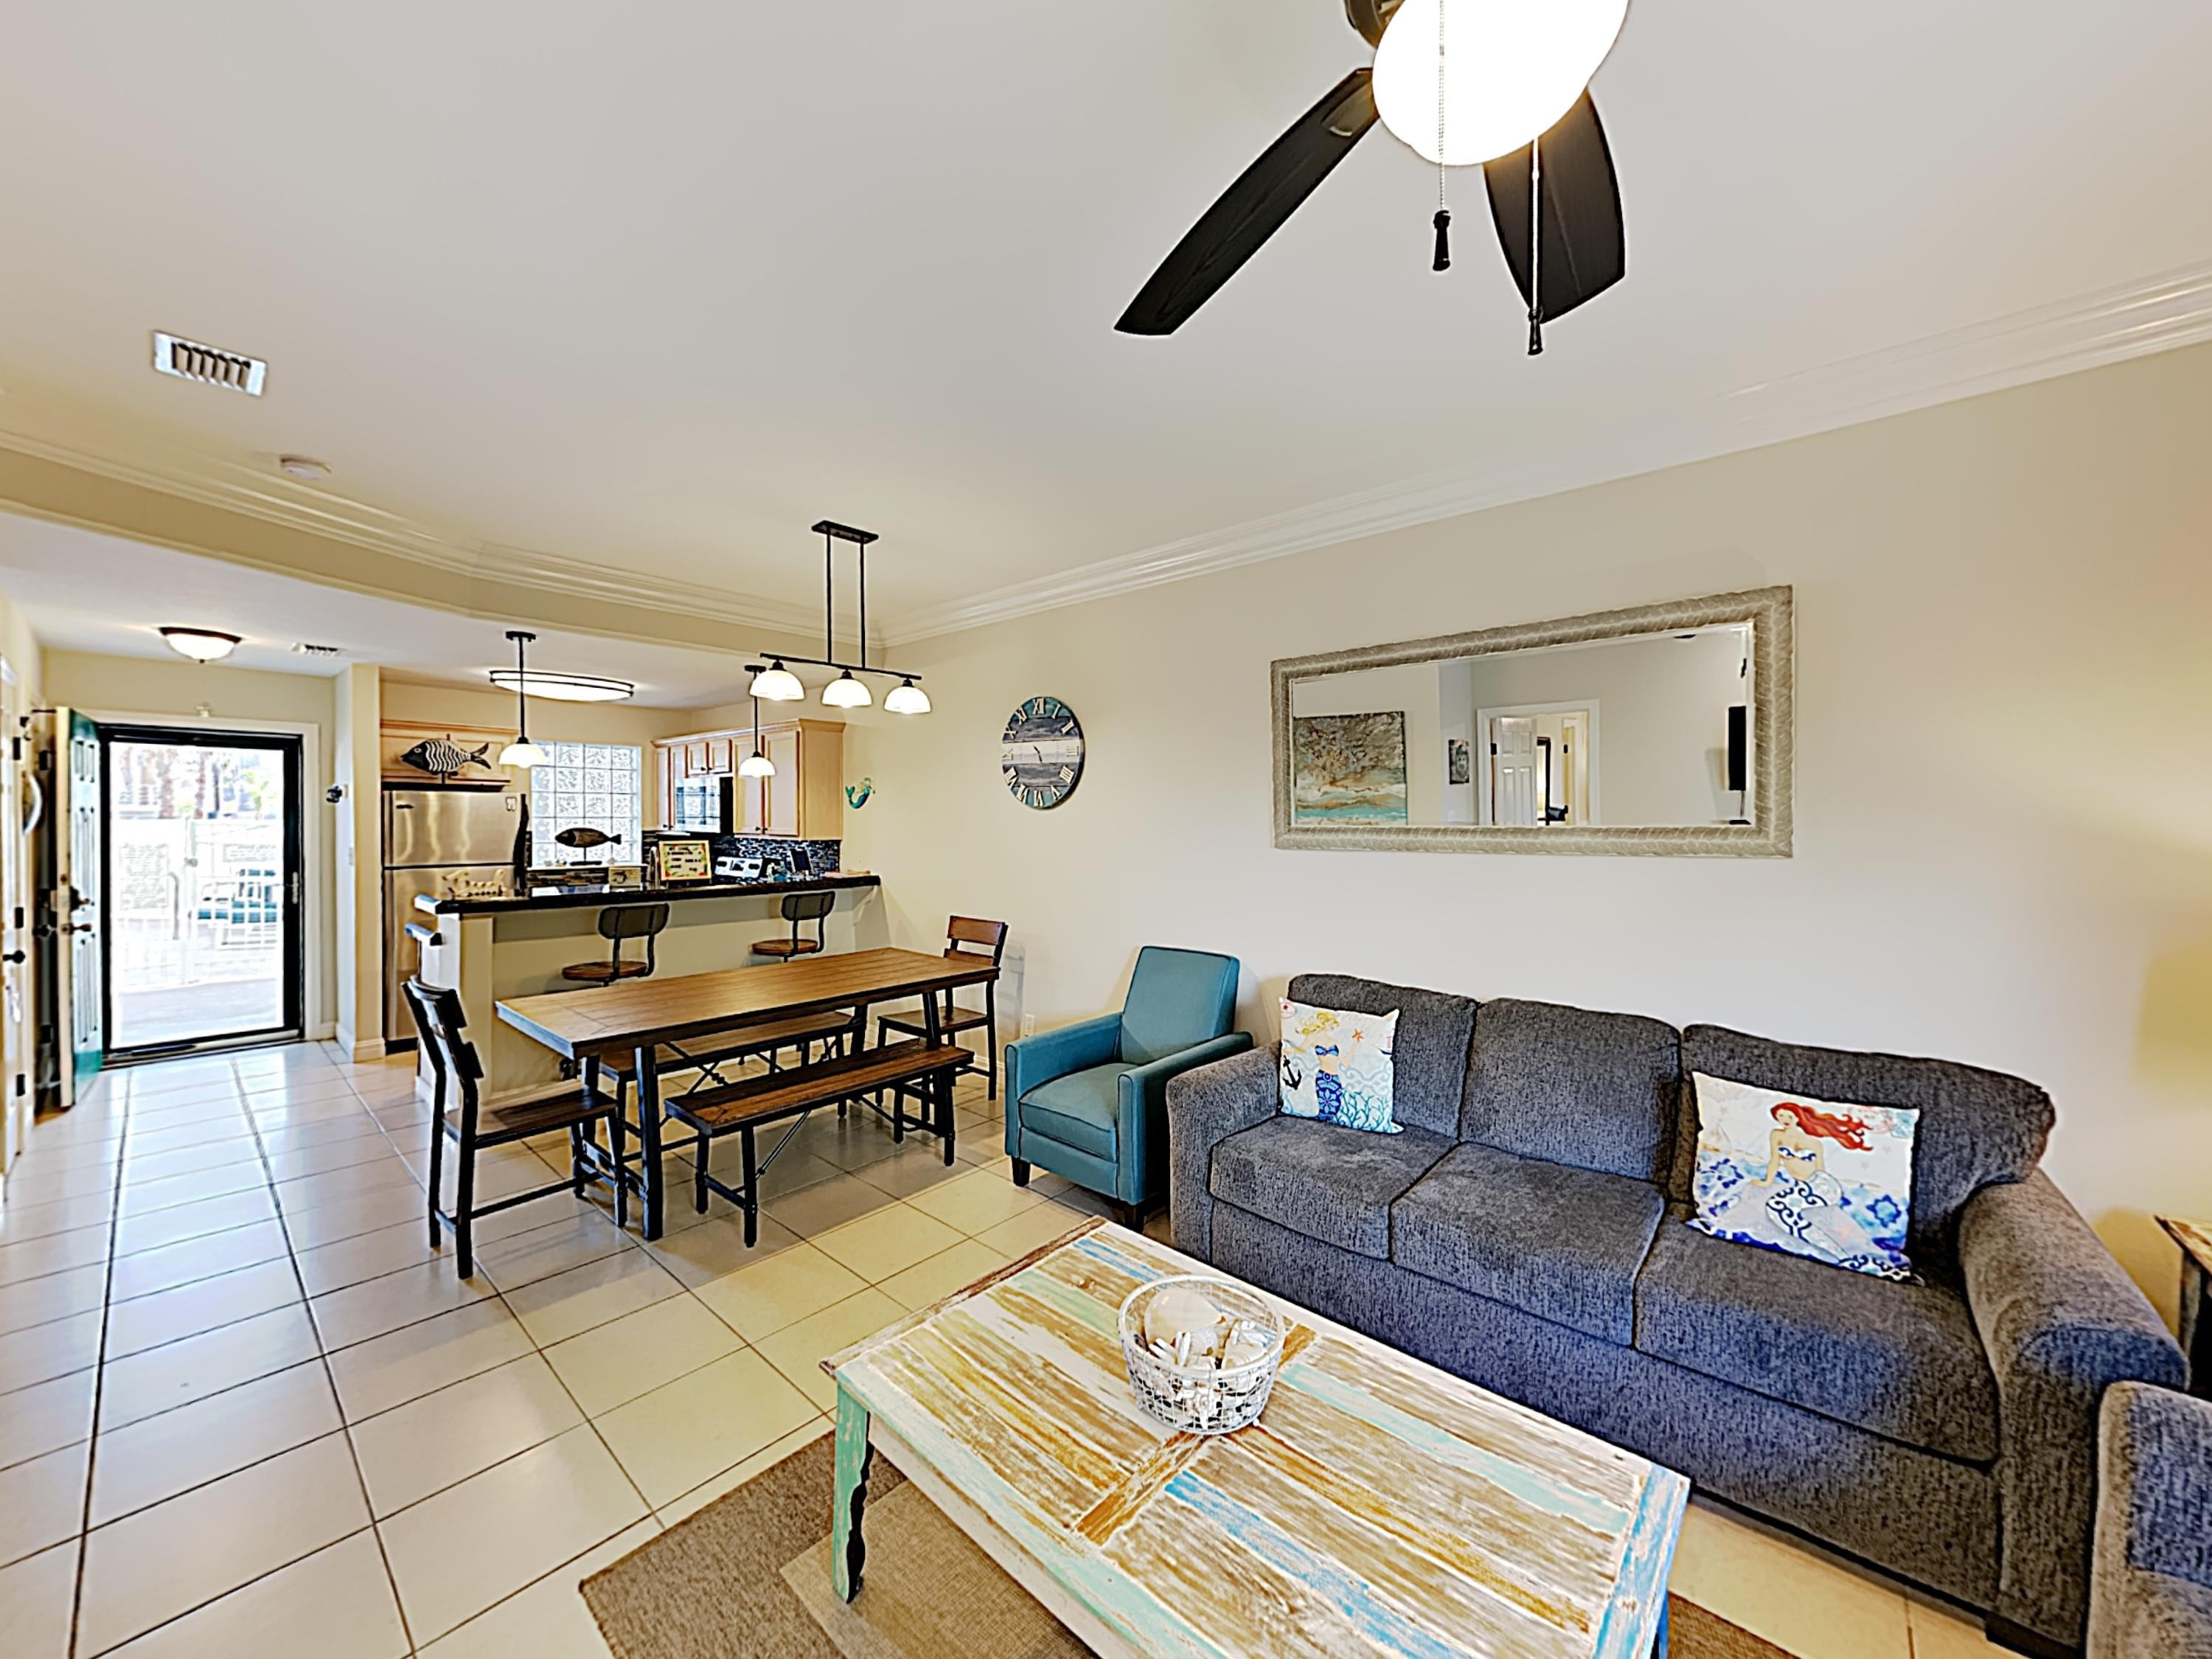 Welcome to South Padre Island! Your condo is professionally managed by TurnKey Vacation Rentals.